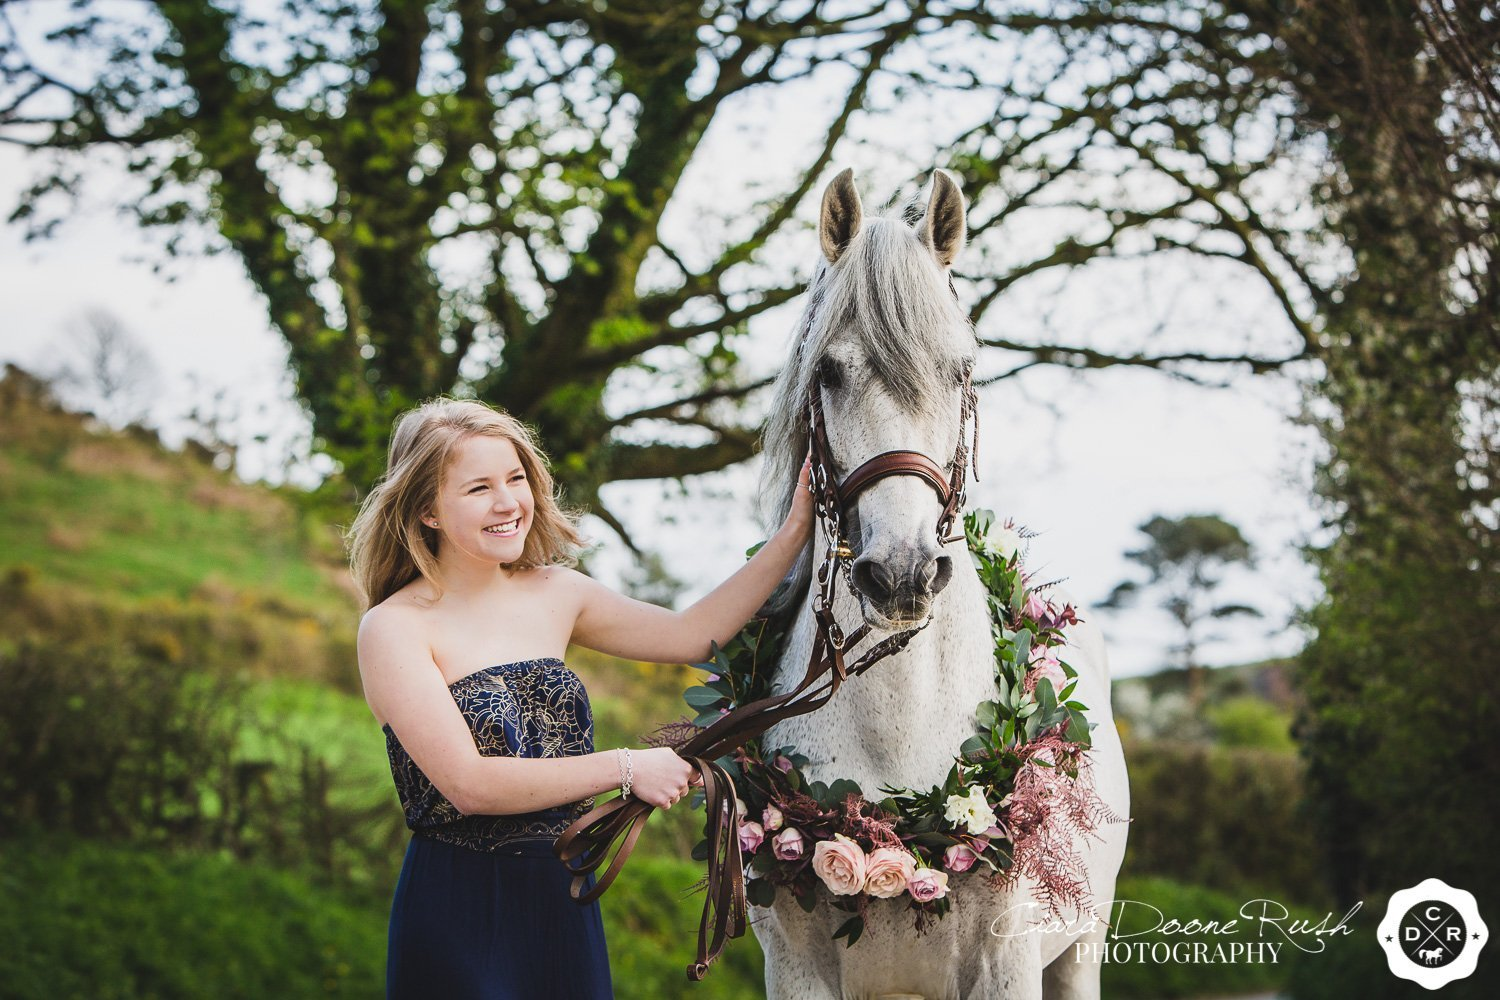 horses, flowers and models